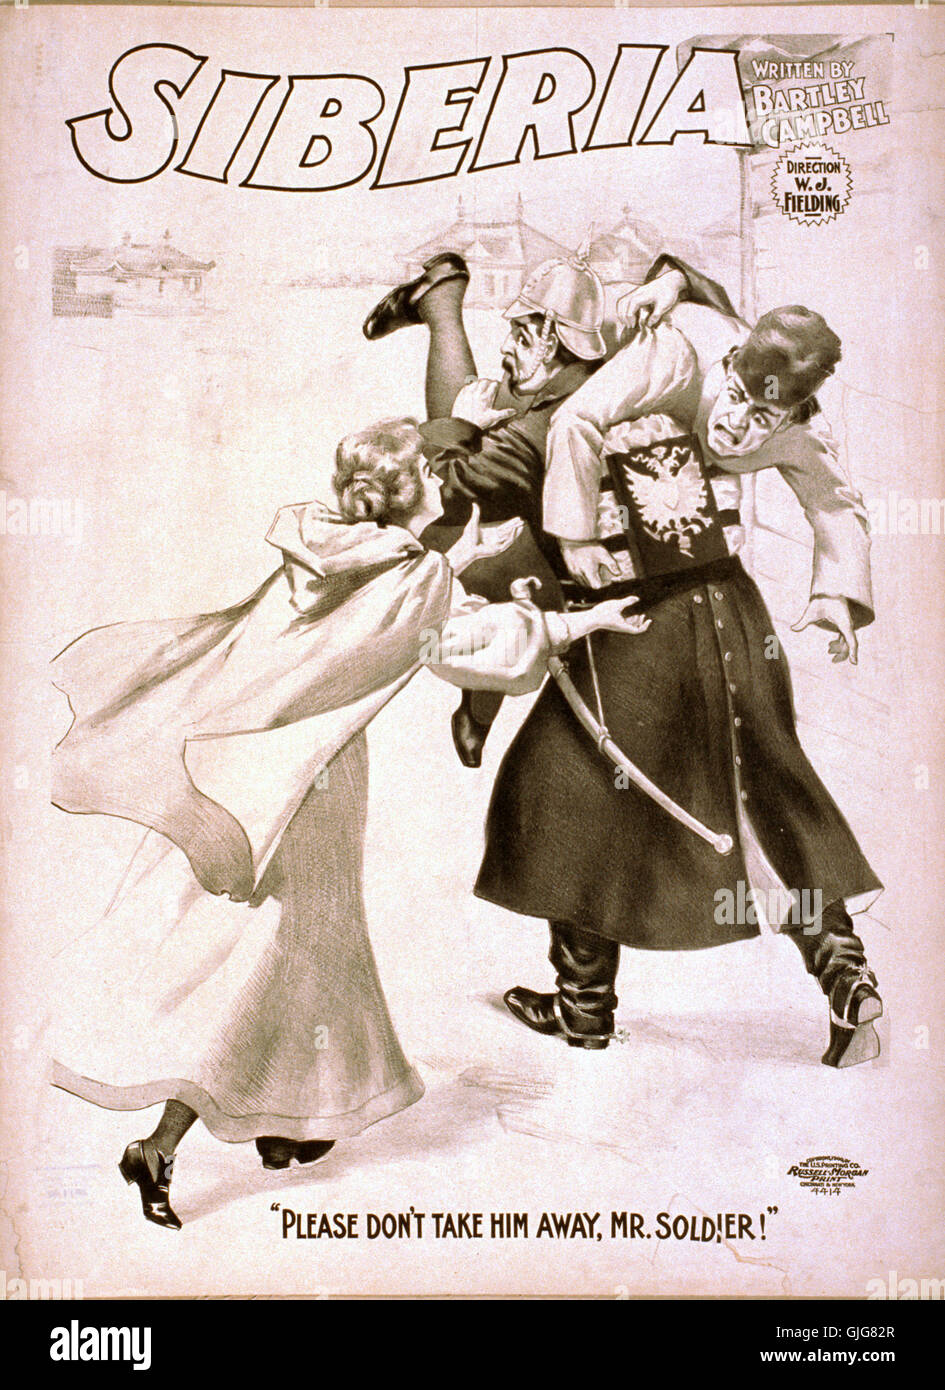 Siberia, poster of play by Bartley Campbell. - Stock Image